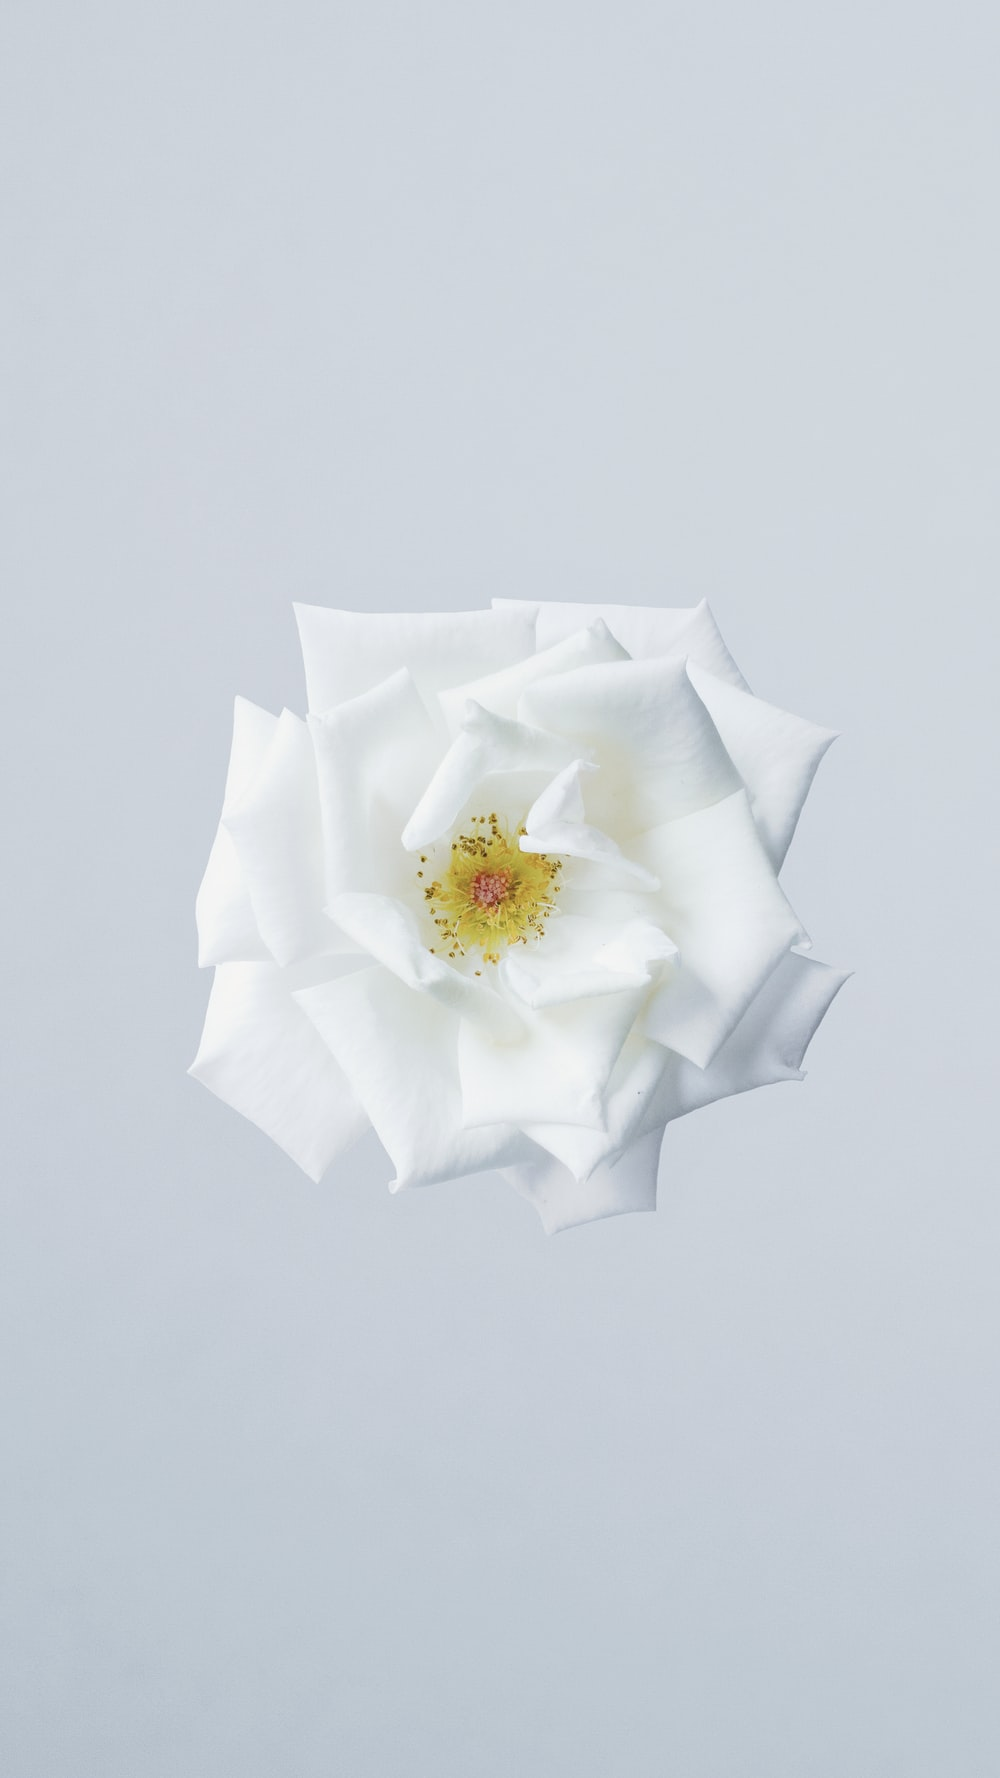 100 white flower pictures download free images on unsplash white flower mightylinksfo